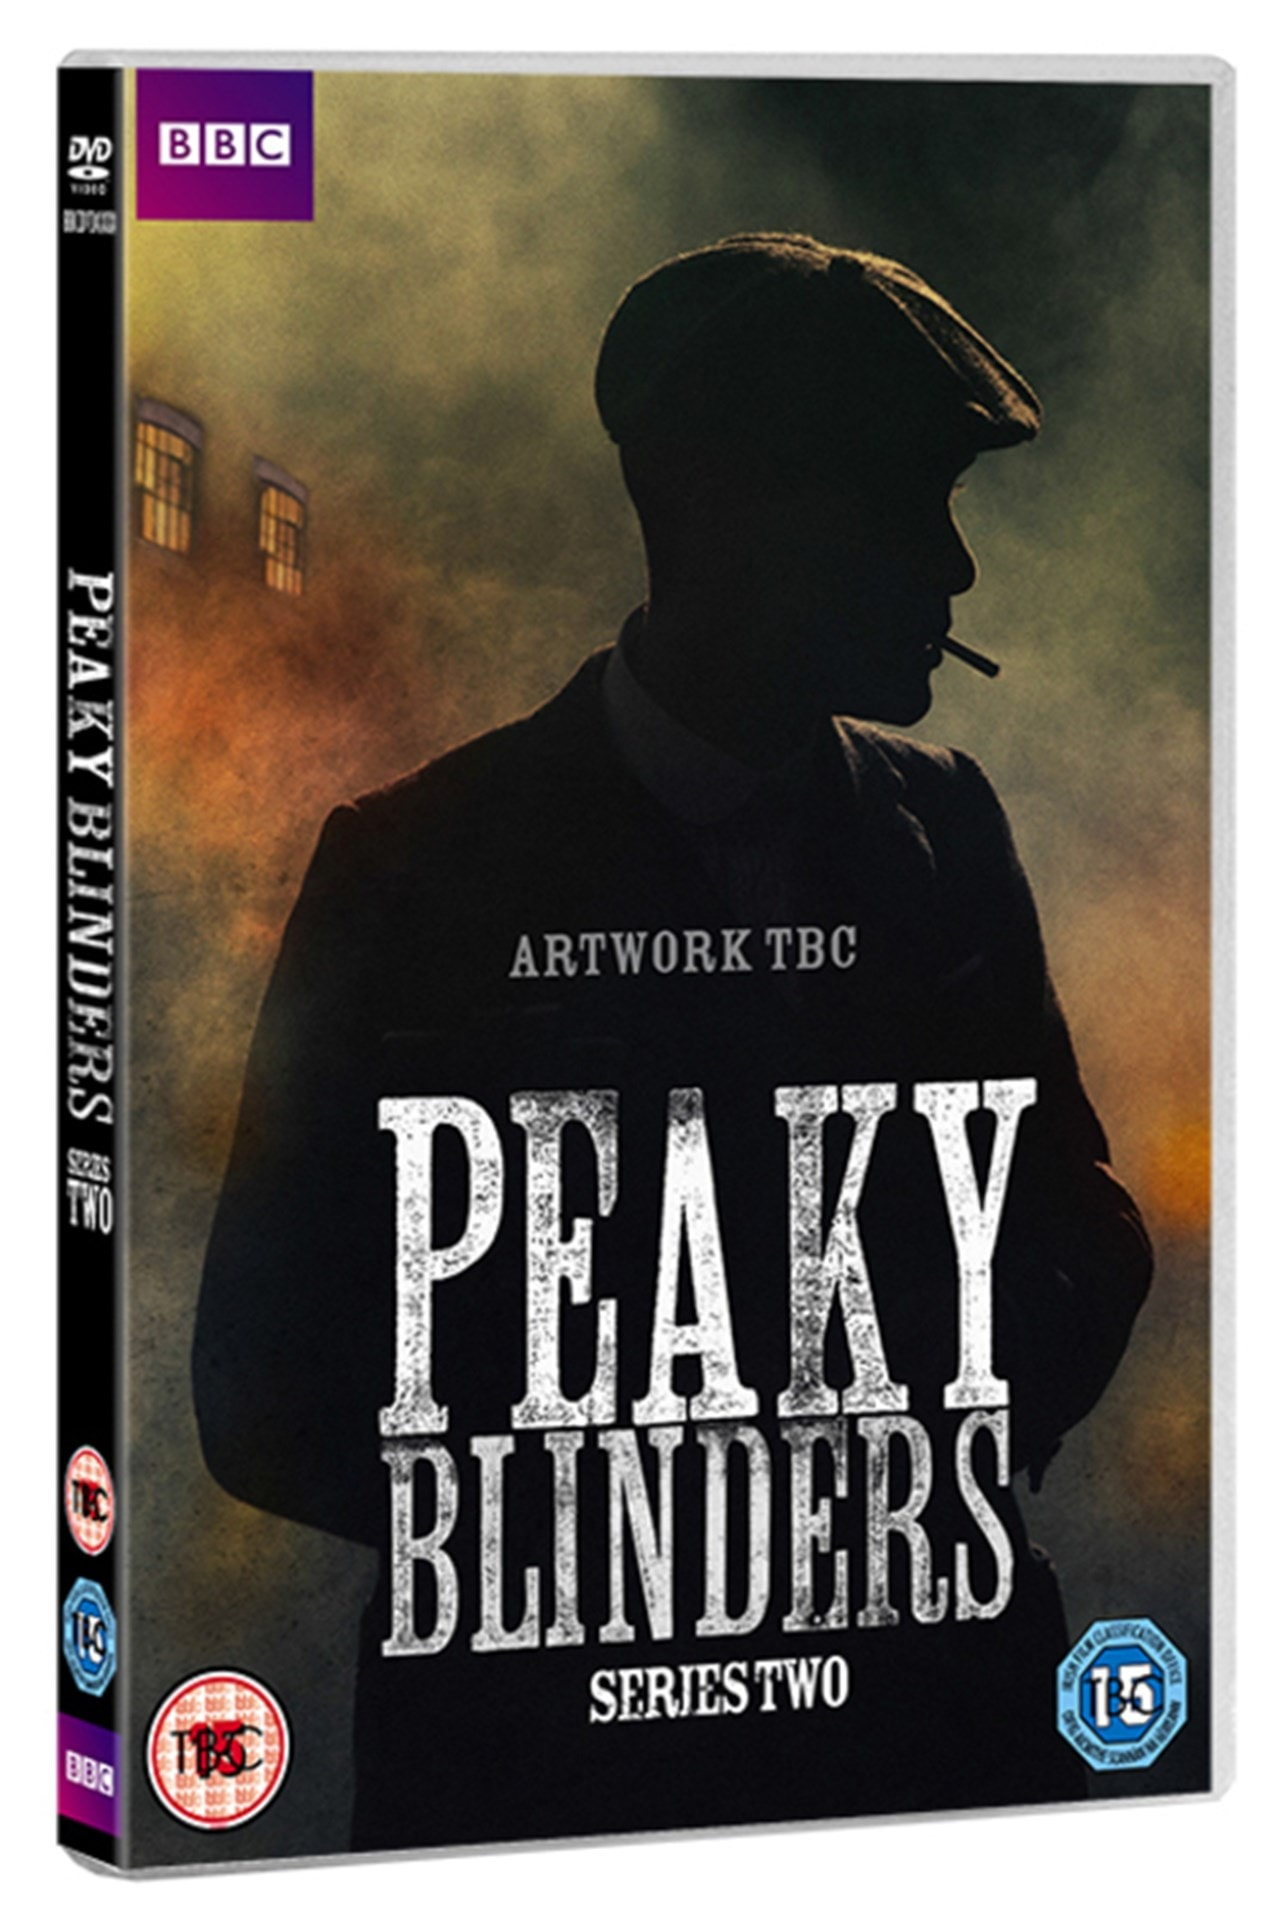 Peaky Blinders: Series 2 - 2